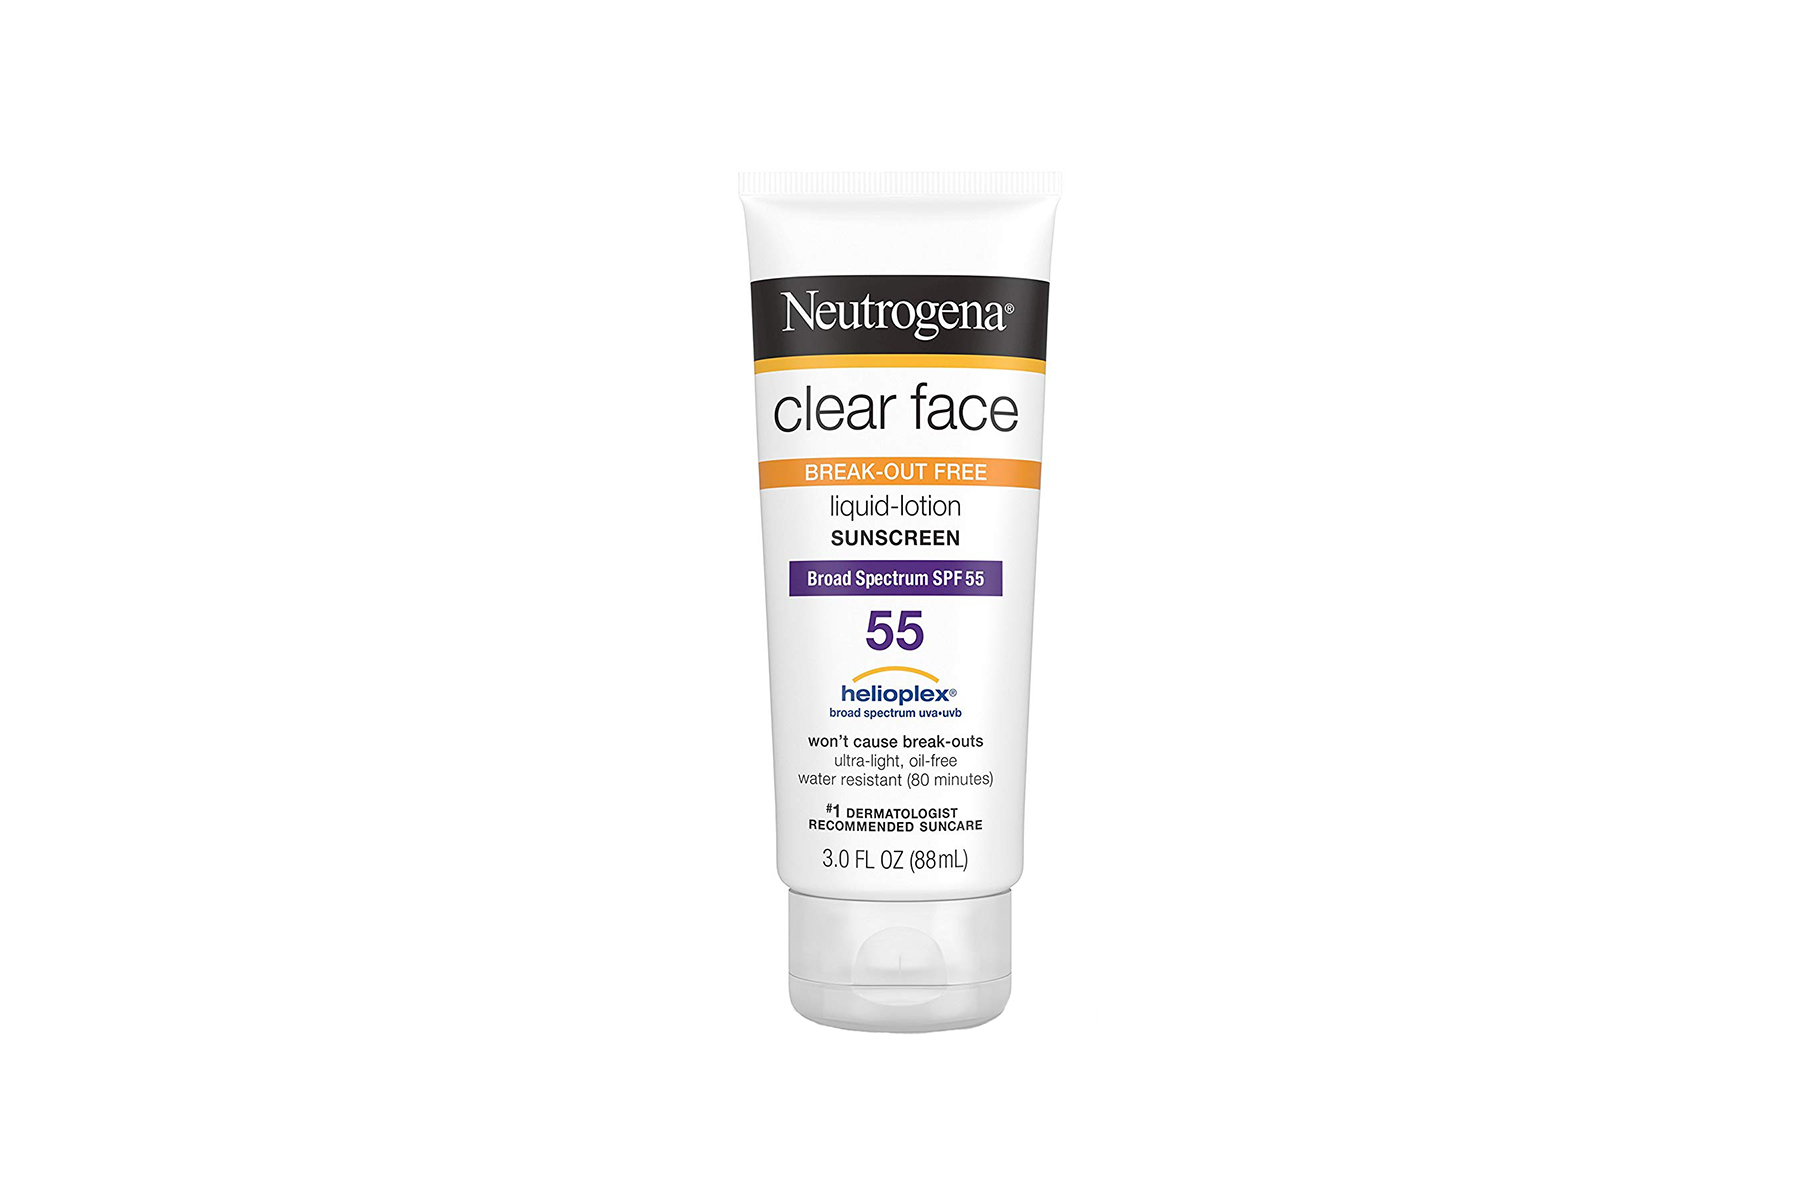 Neutrogena Clear Face Break-Out Free Sunscreen